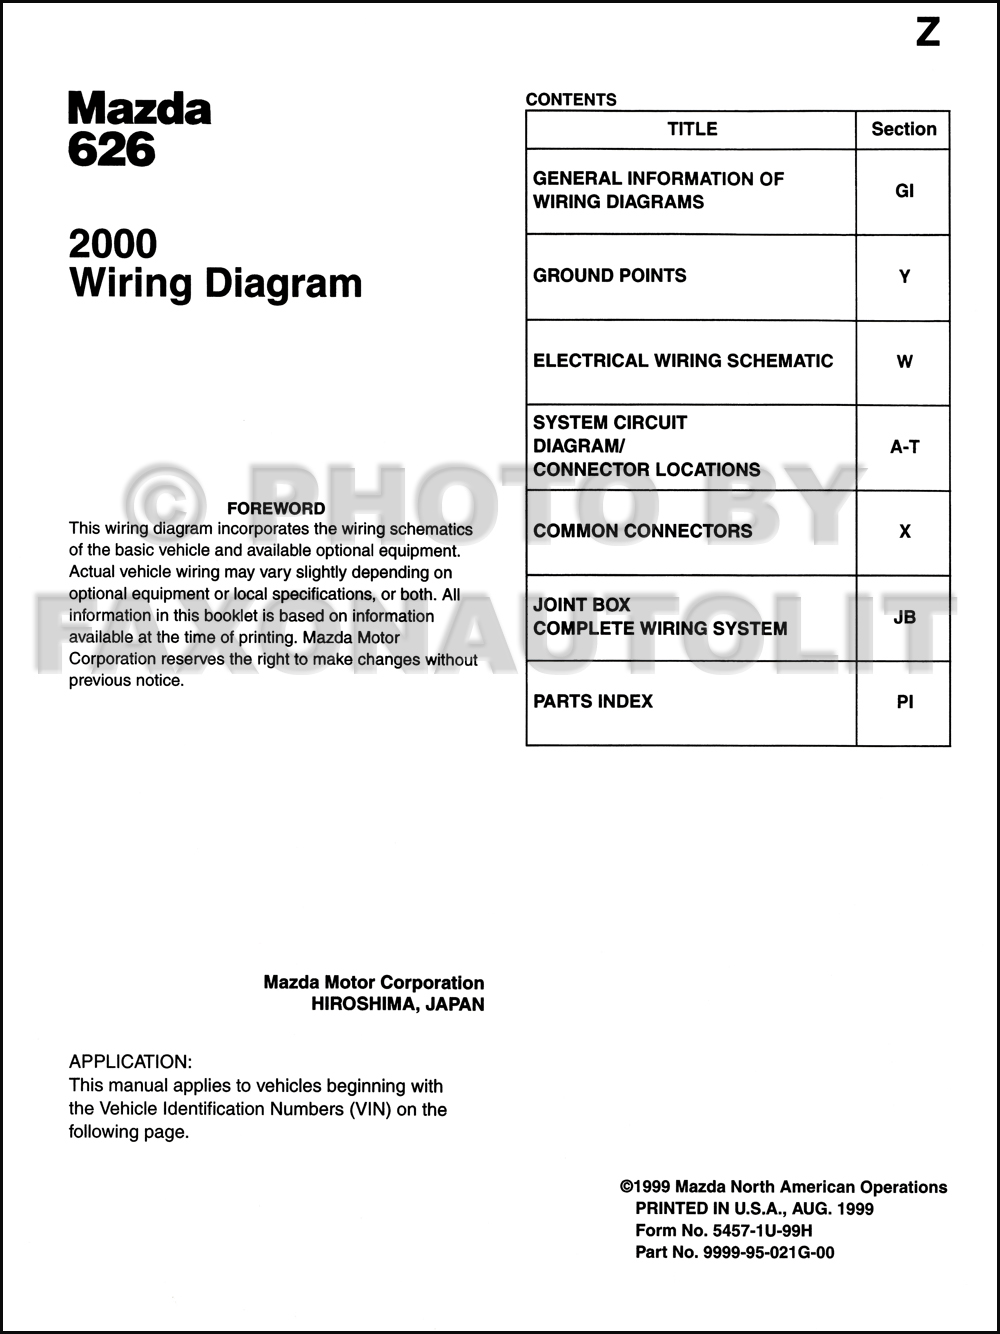 2000 Mazda 626 Wiring Diagram Manual Original. click on thumbnail to zoom